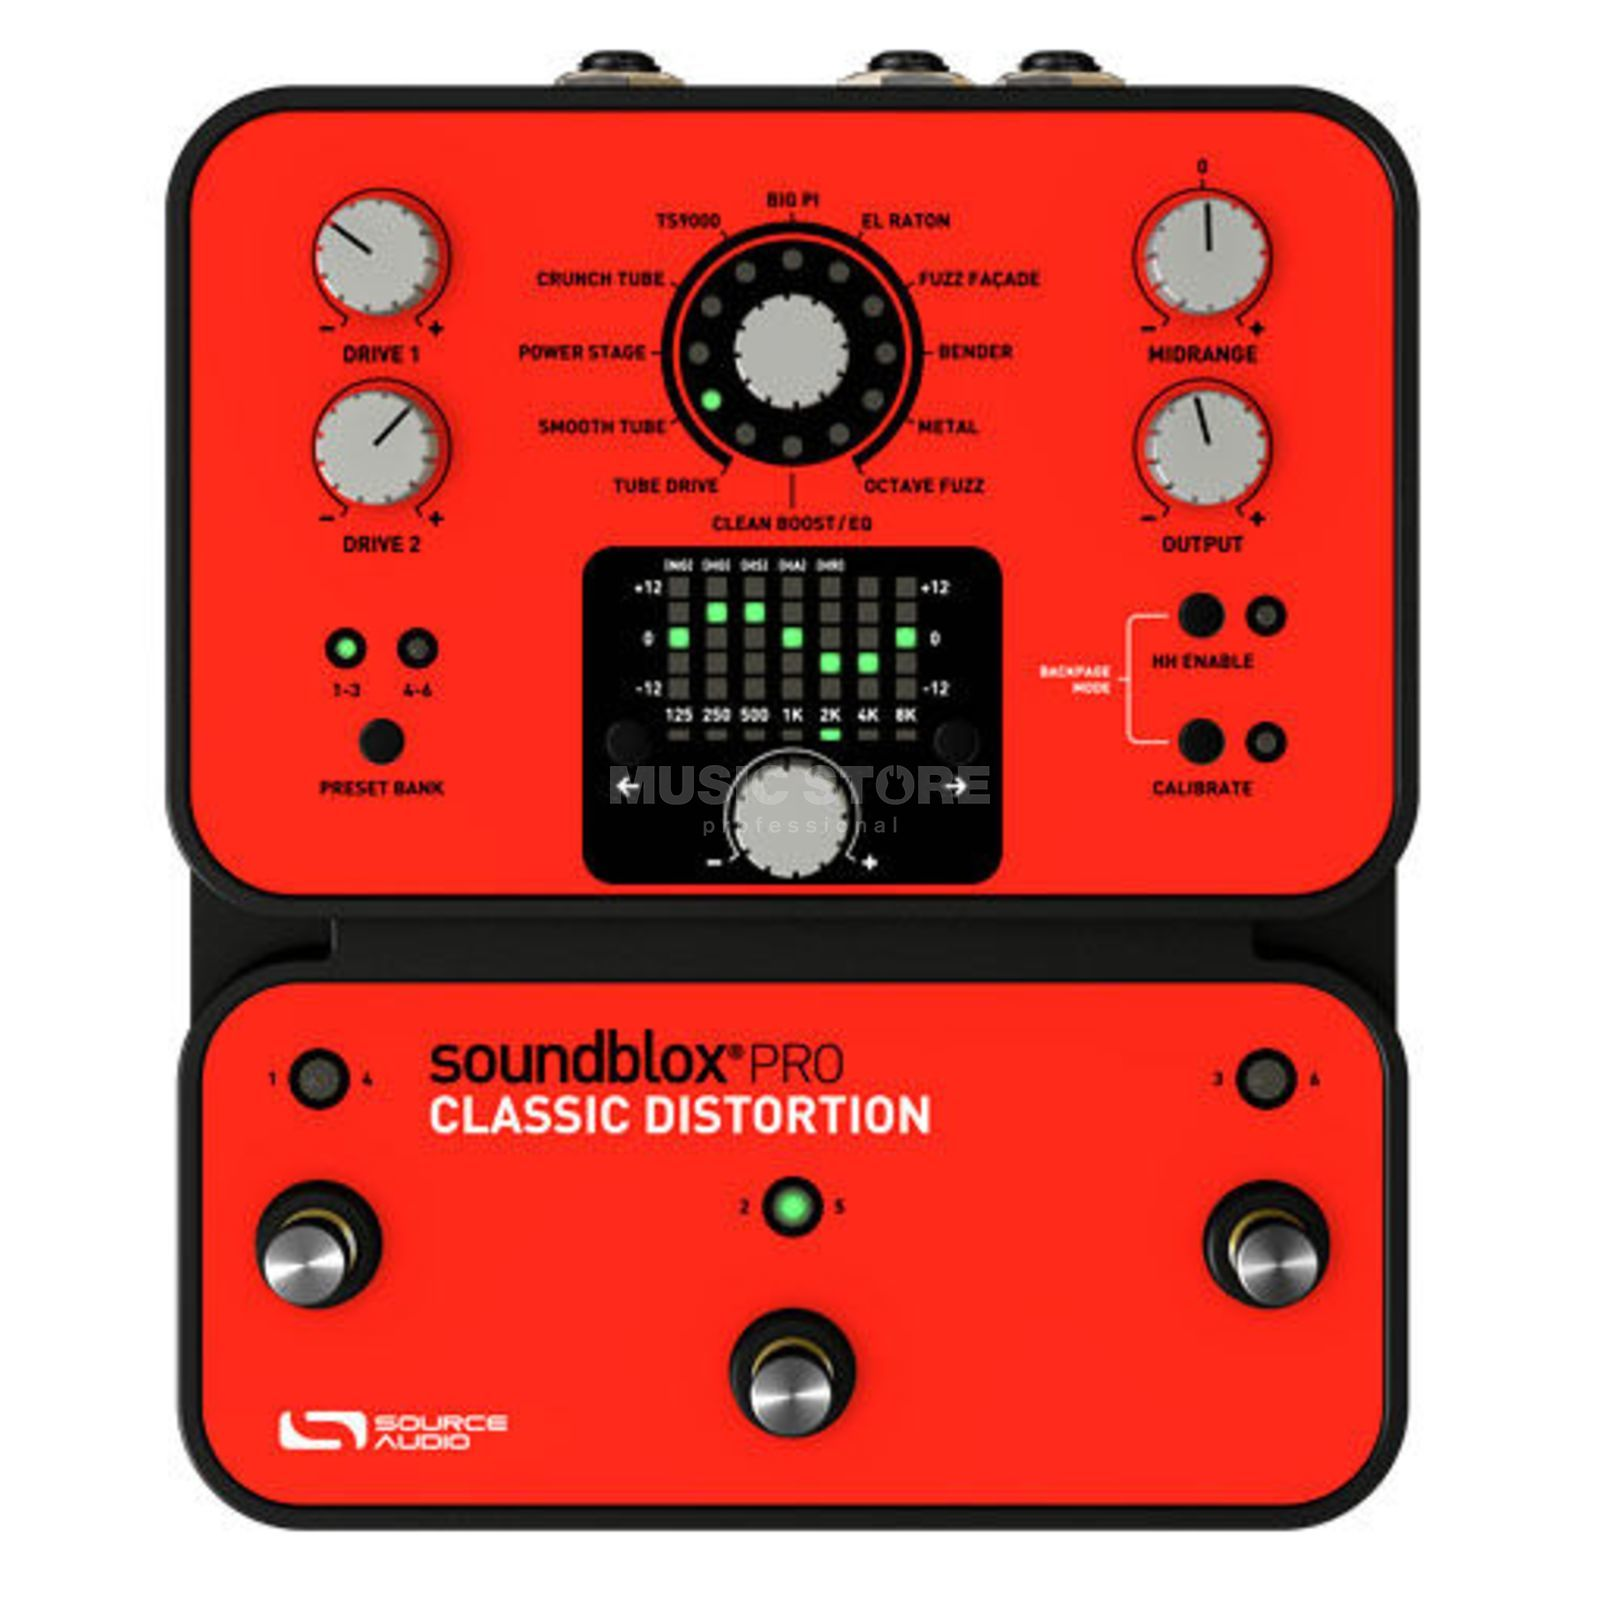 Source Audio Soundblox Pro Classic Distort Produktbild